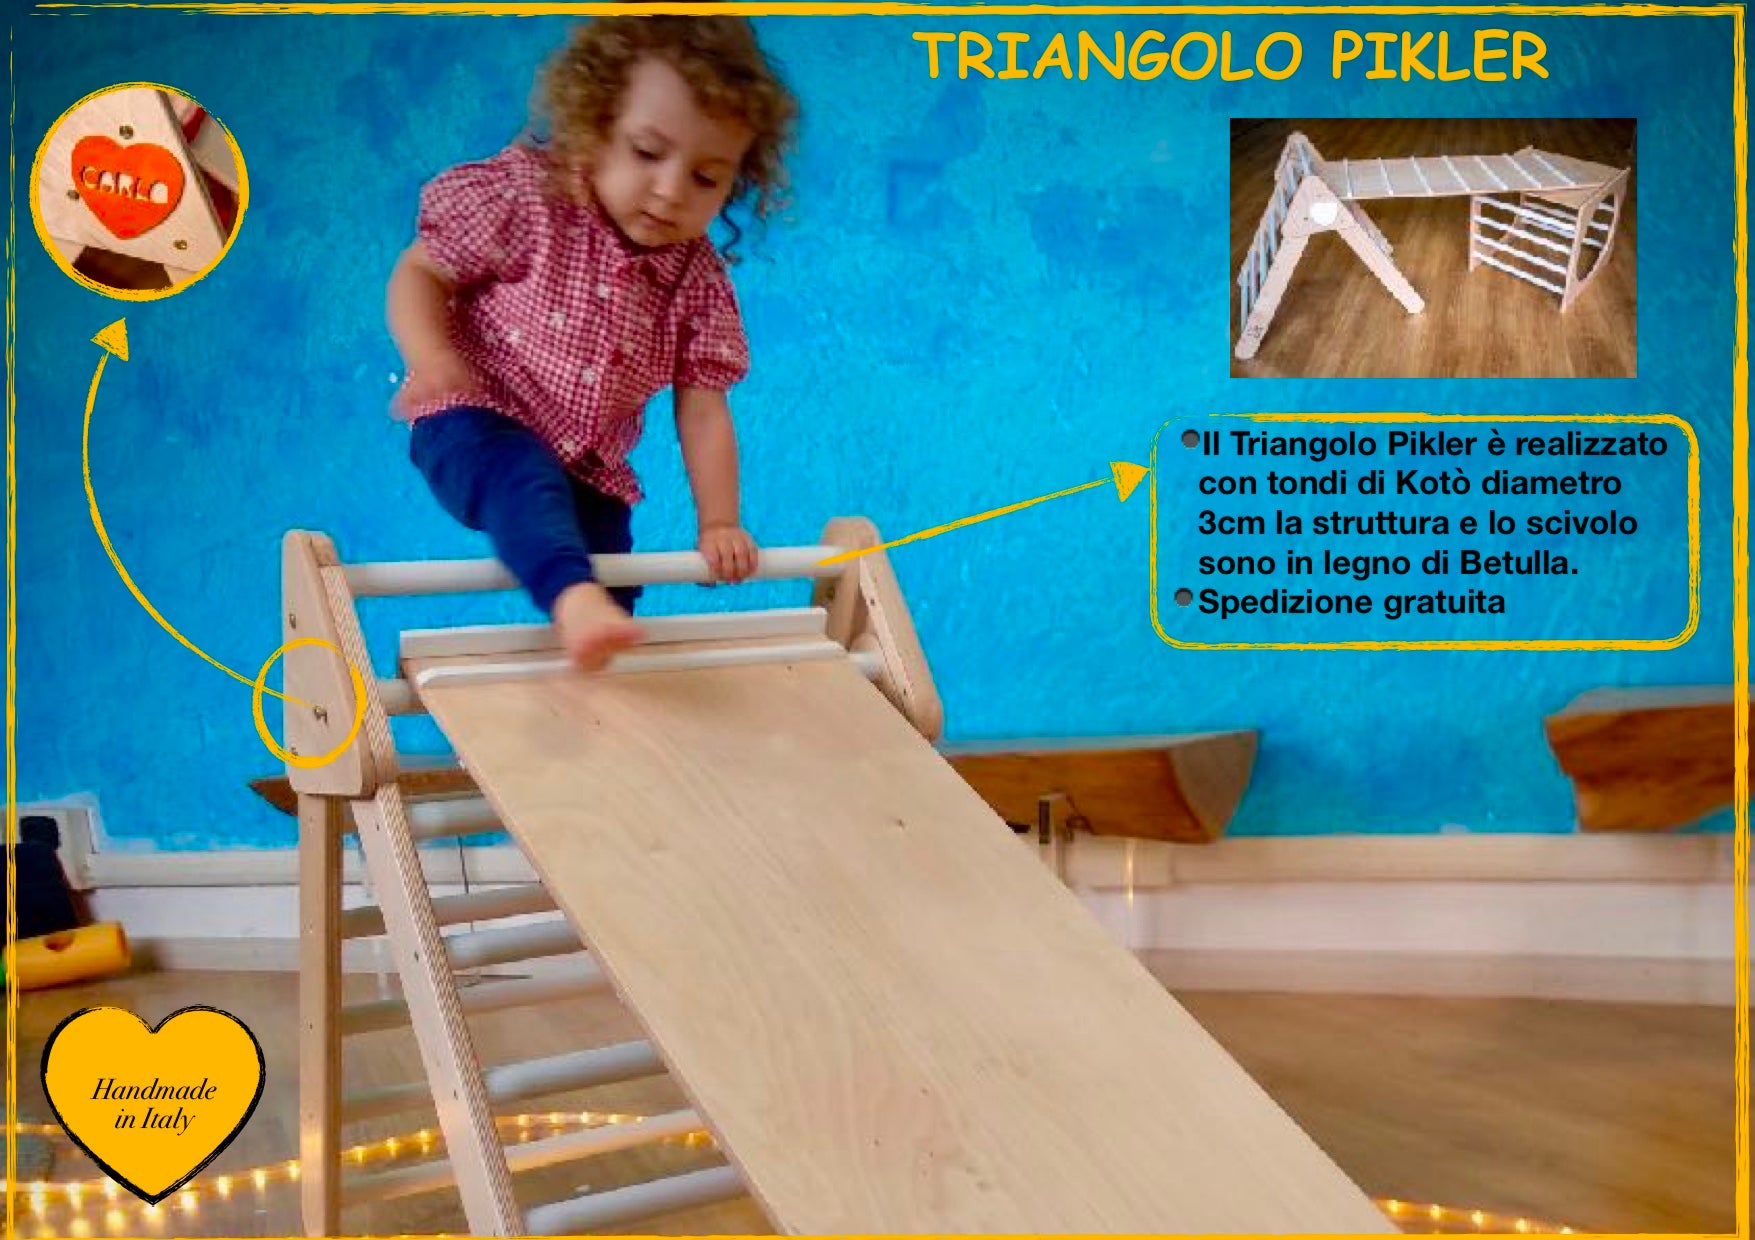 Triangolo Pikler